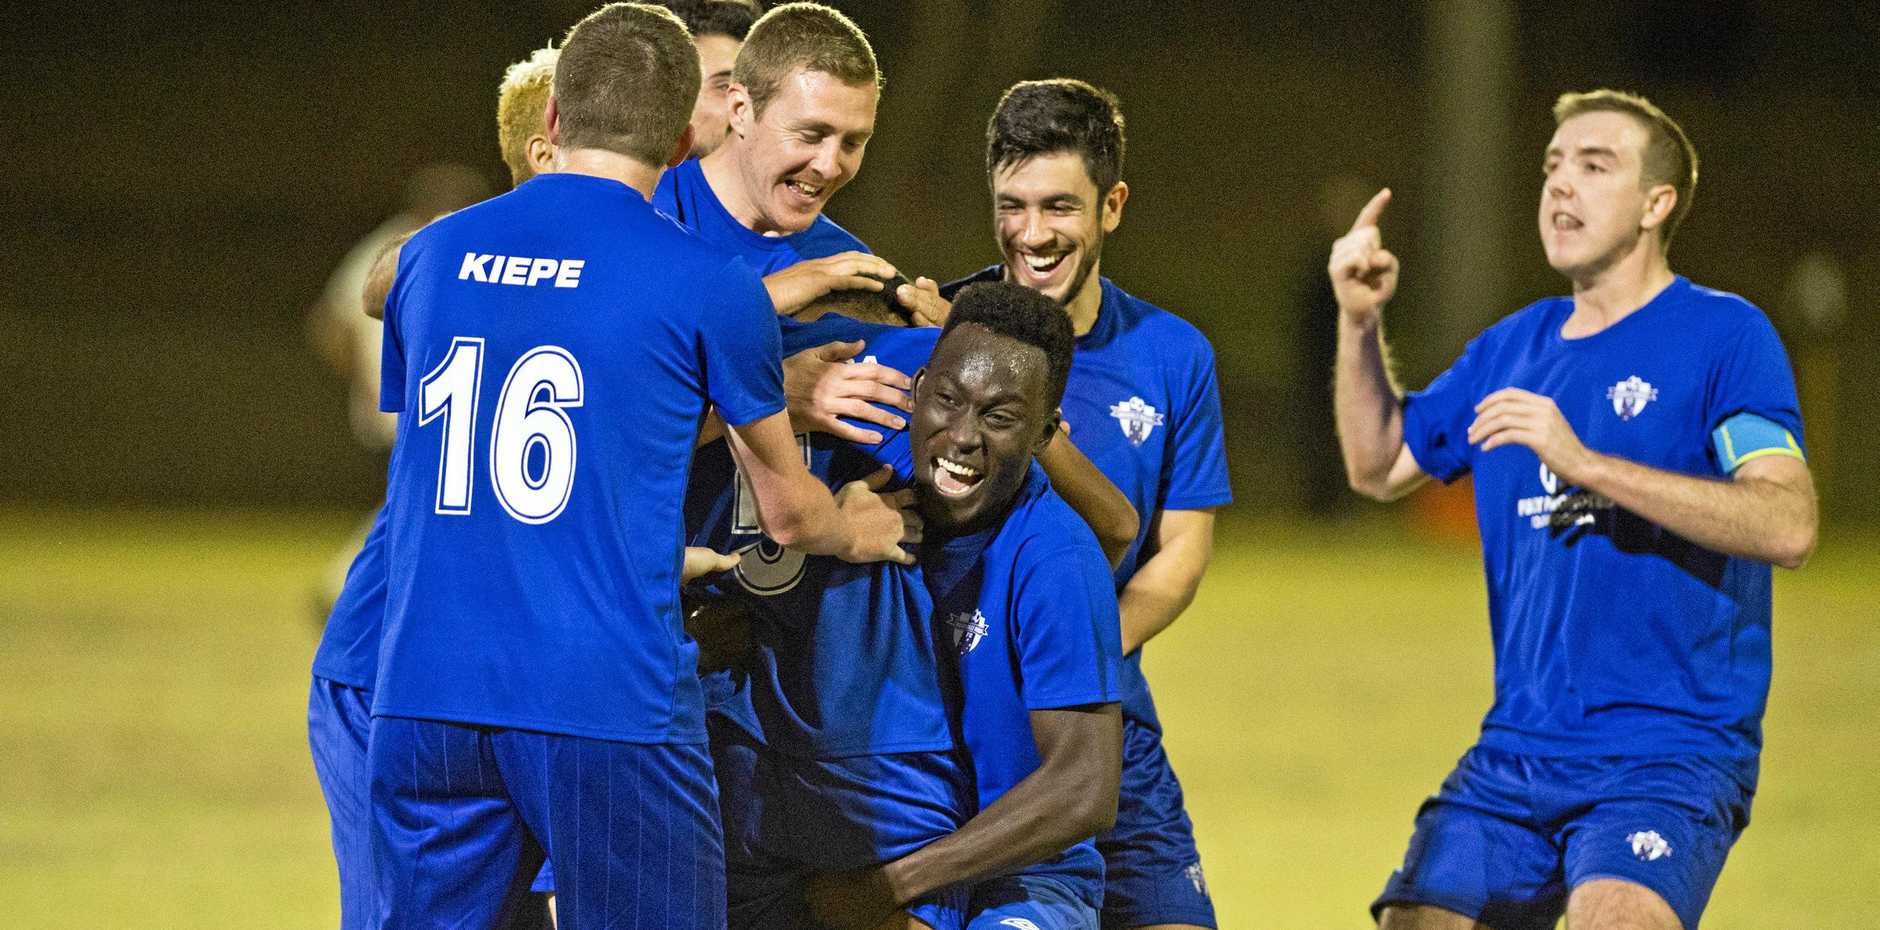 SHIELD WINNERS: Rockville celebrate Patrick Maneikera's goal. Jefferson Oliveira's injury time goal sealed a 2-1 win for Rockville over Willowburn in the Winstanley Shield clash on Saturday.